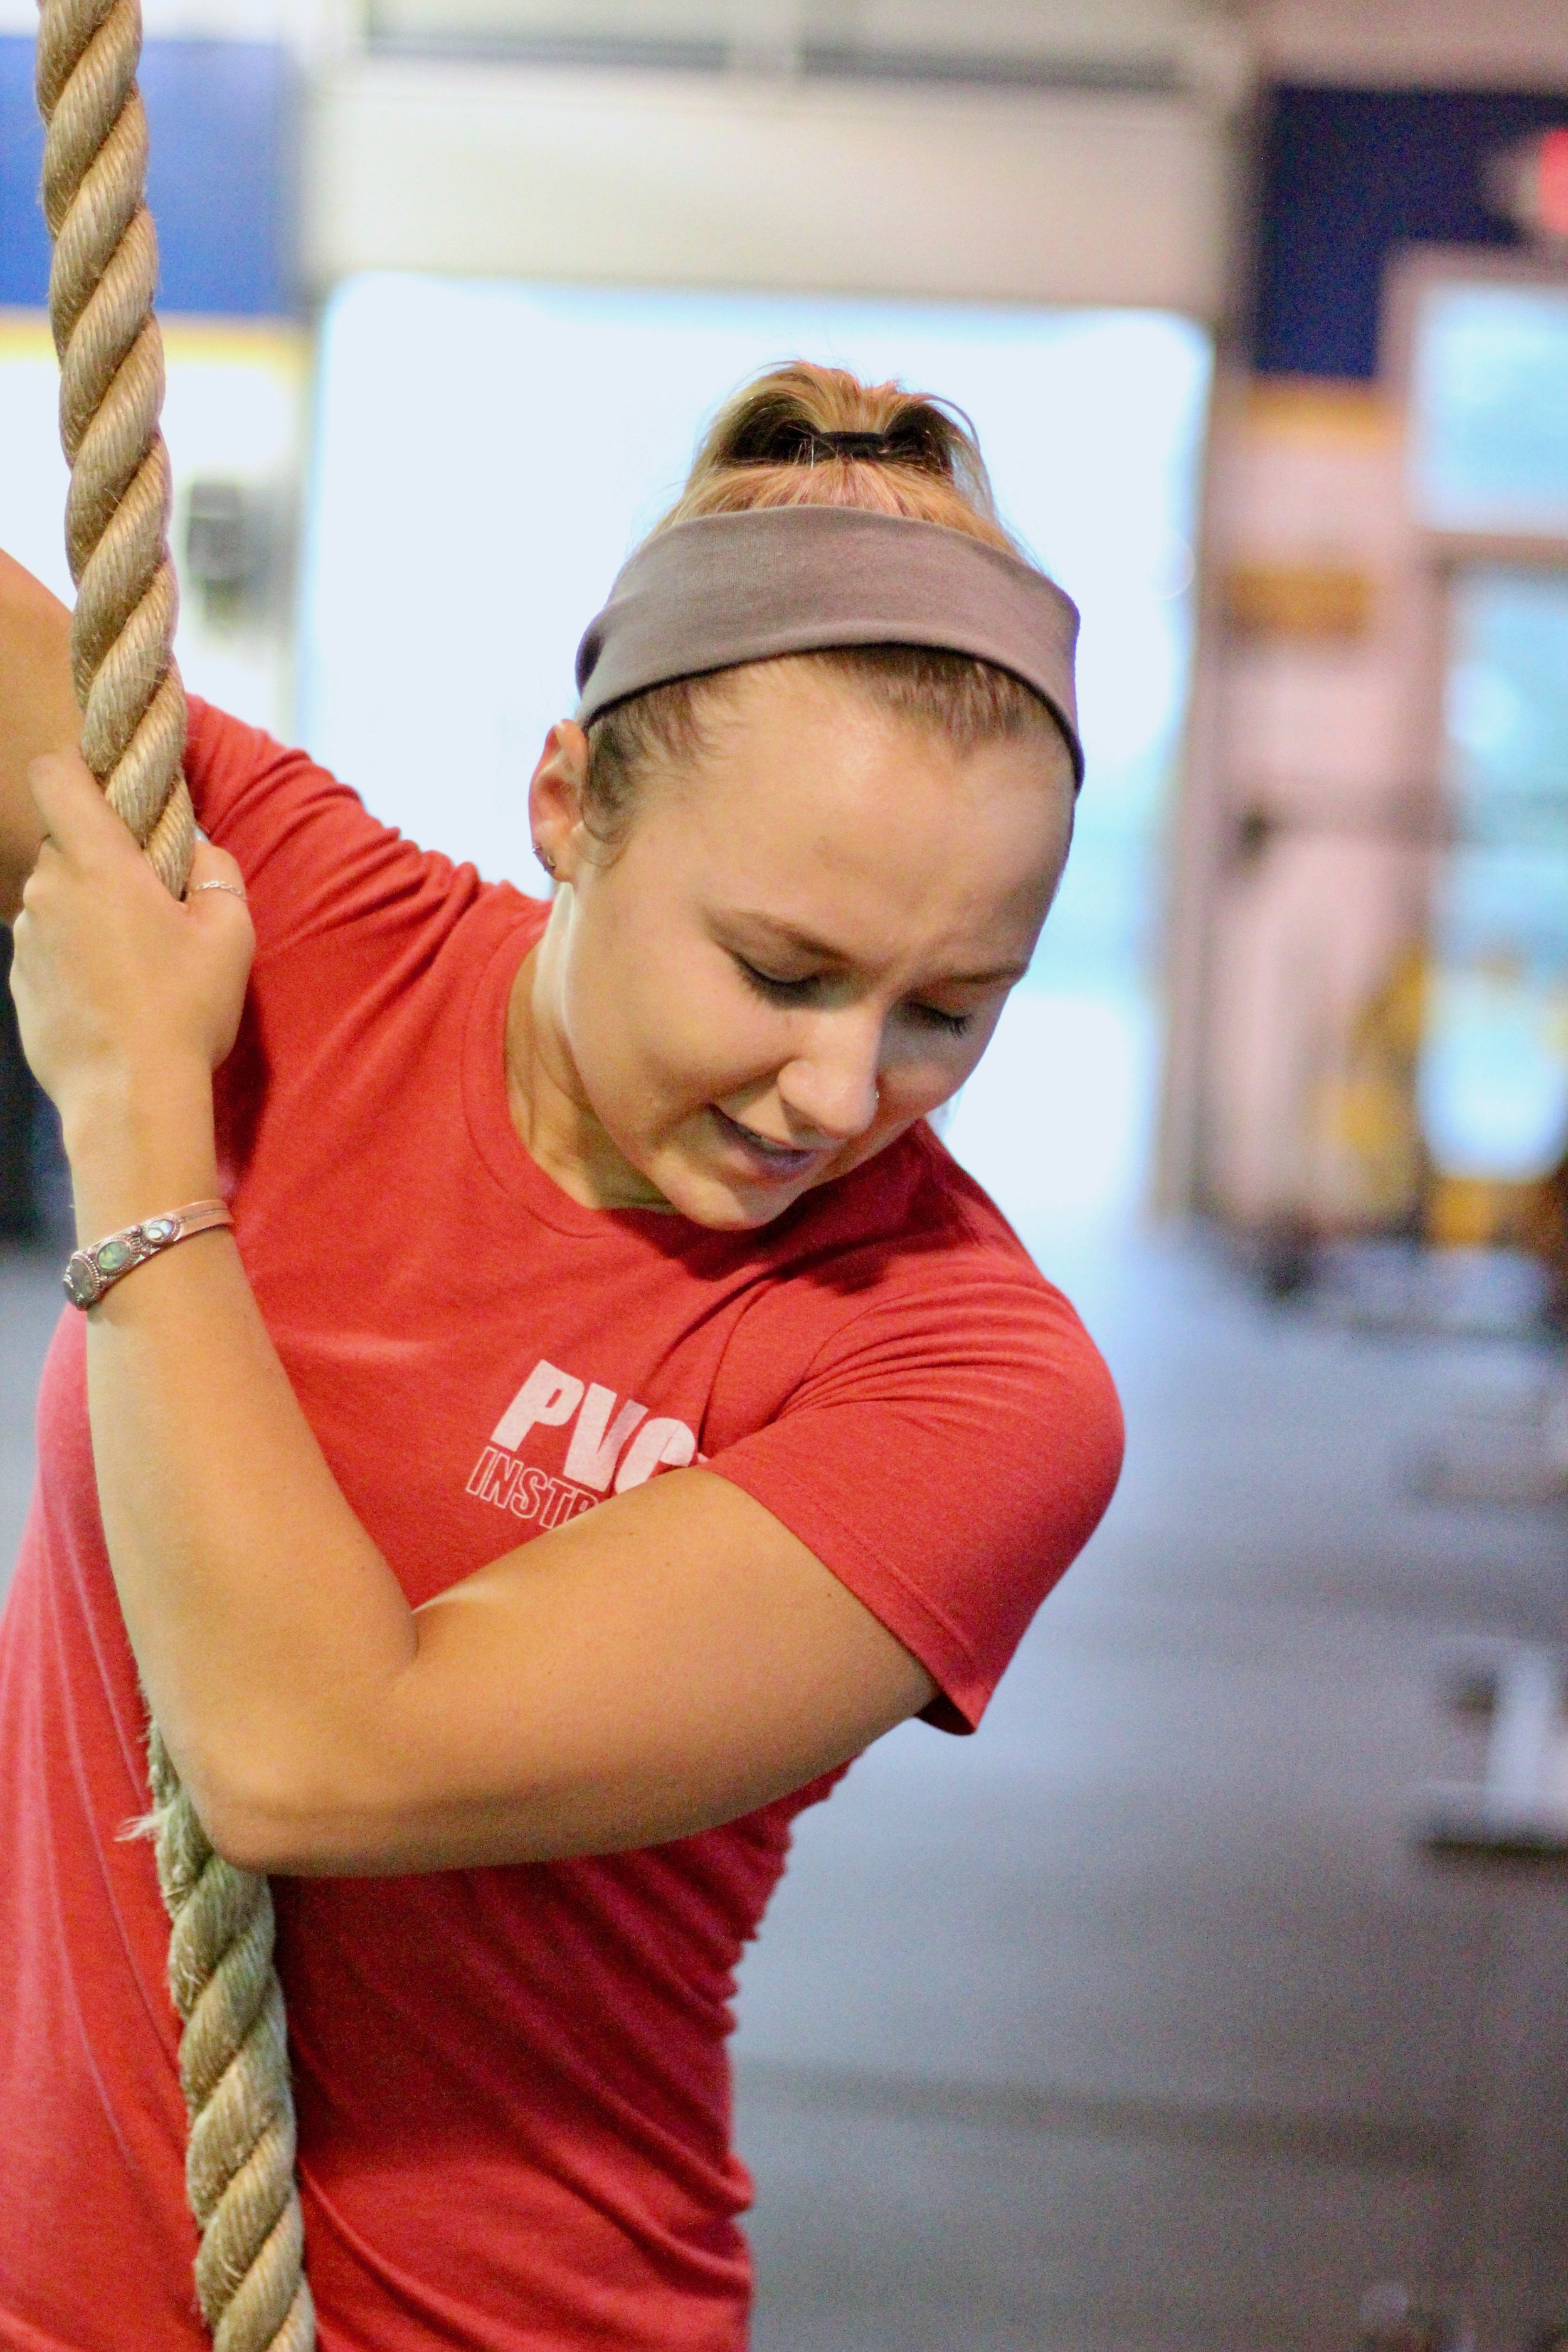 Classes with Coach Heather are a blast! Here she is teaching rope climbs:) So fun!